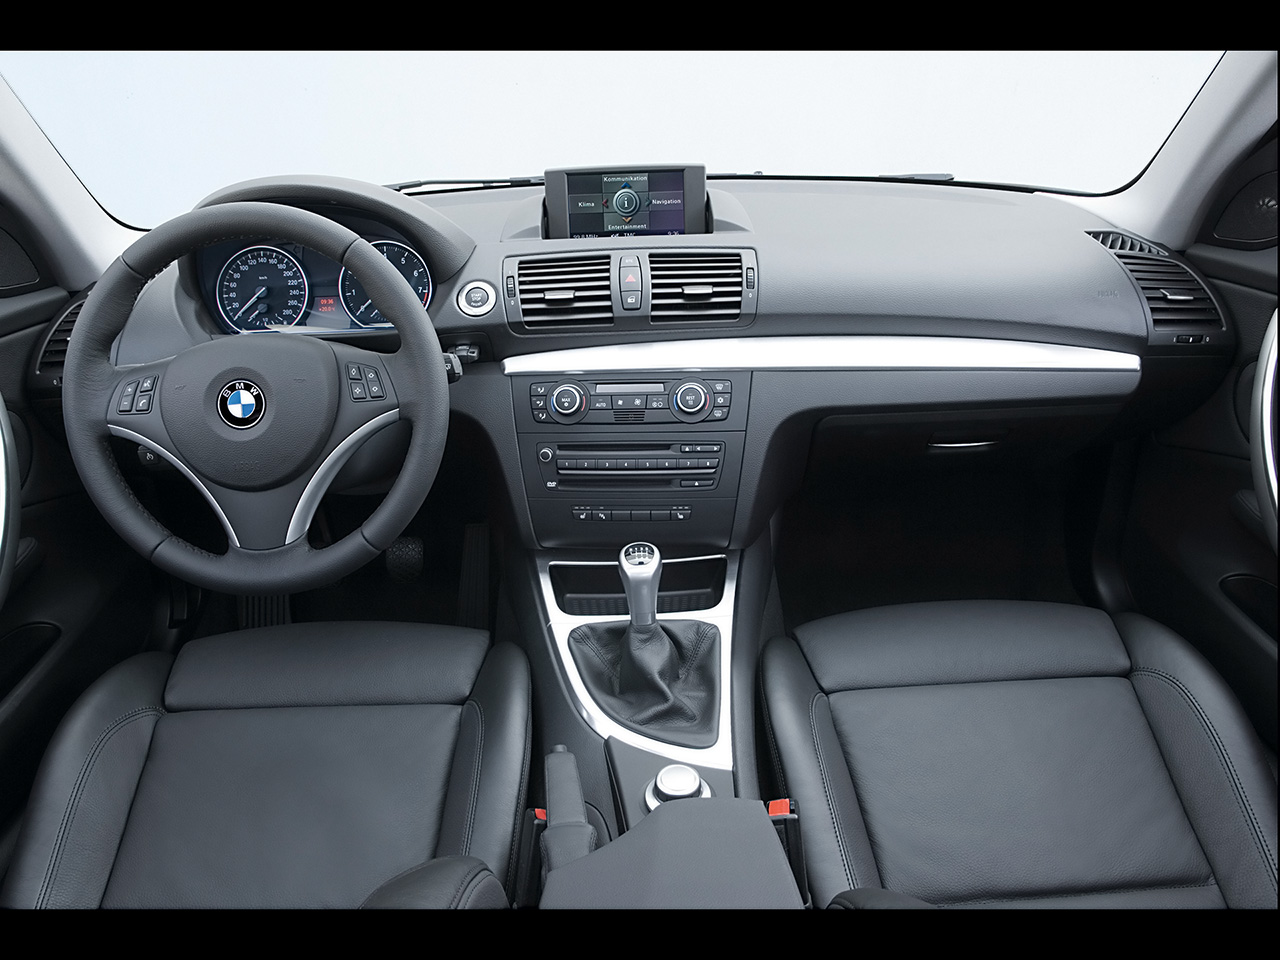 BMW 1 Series interior #3